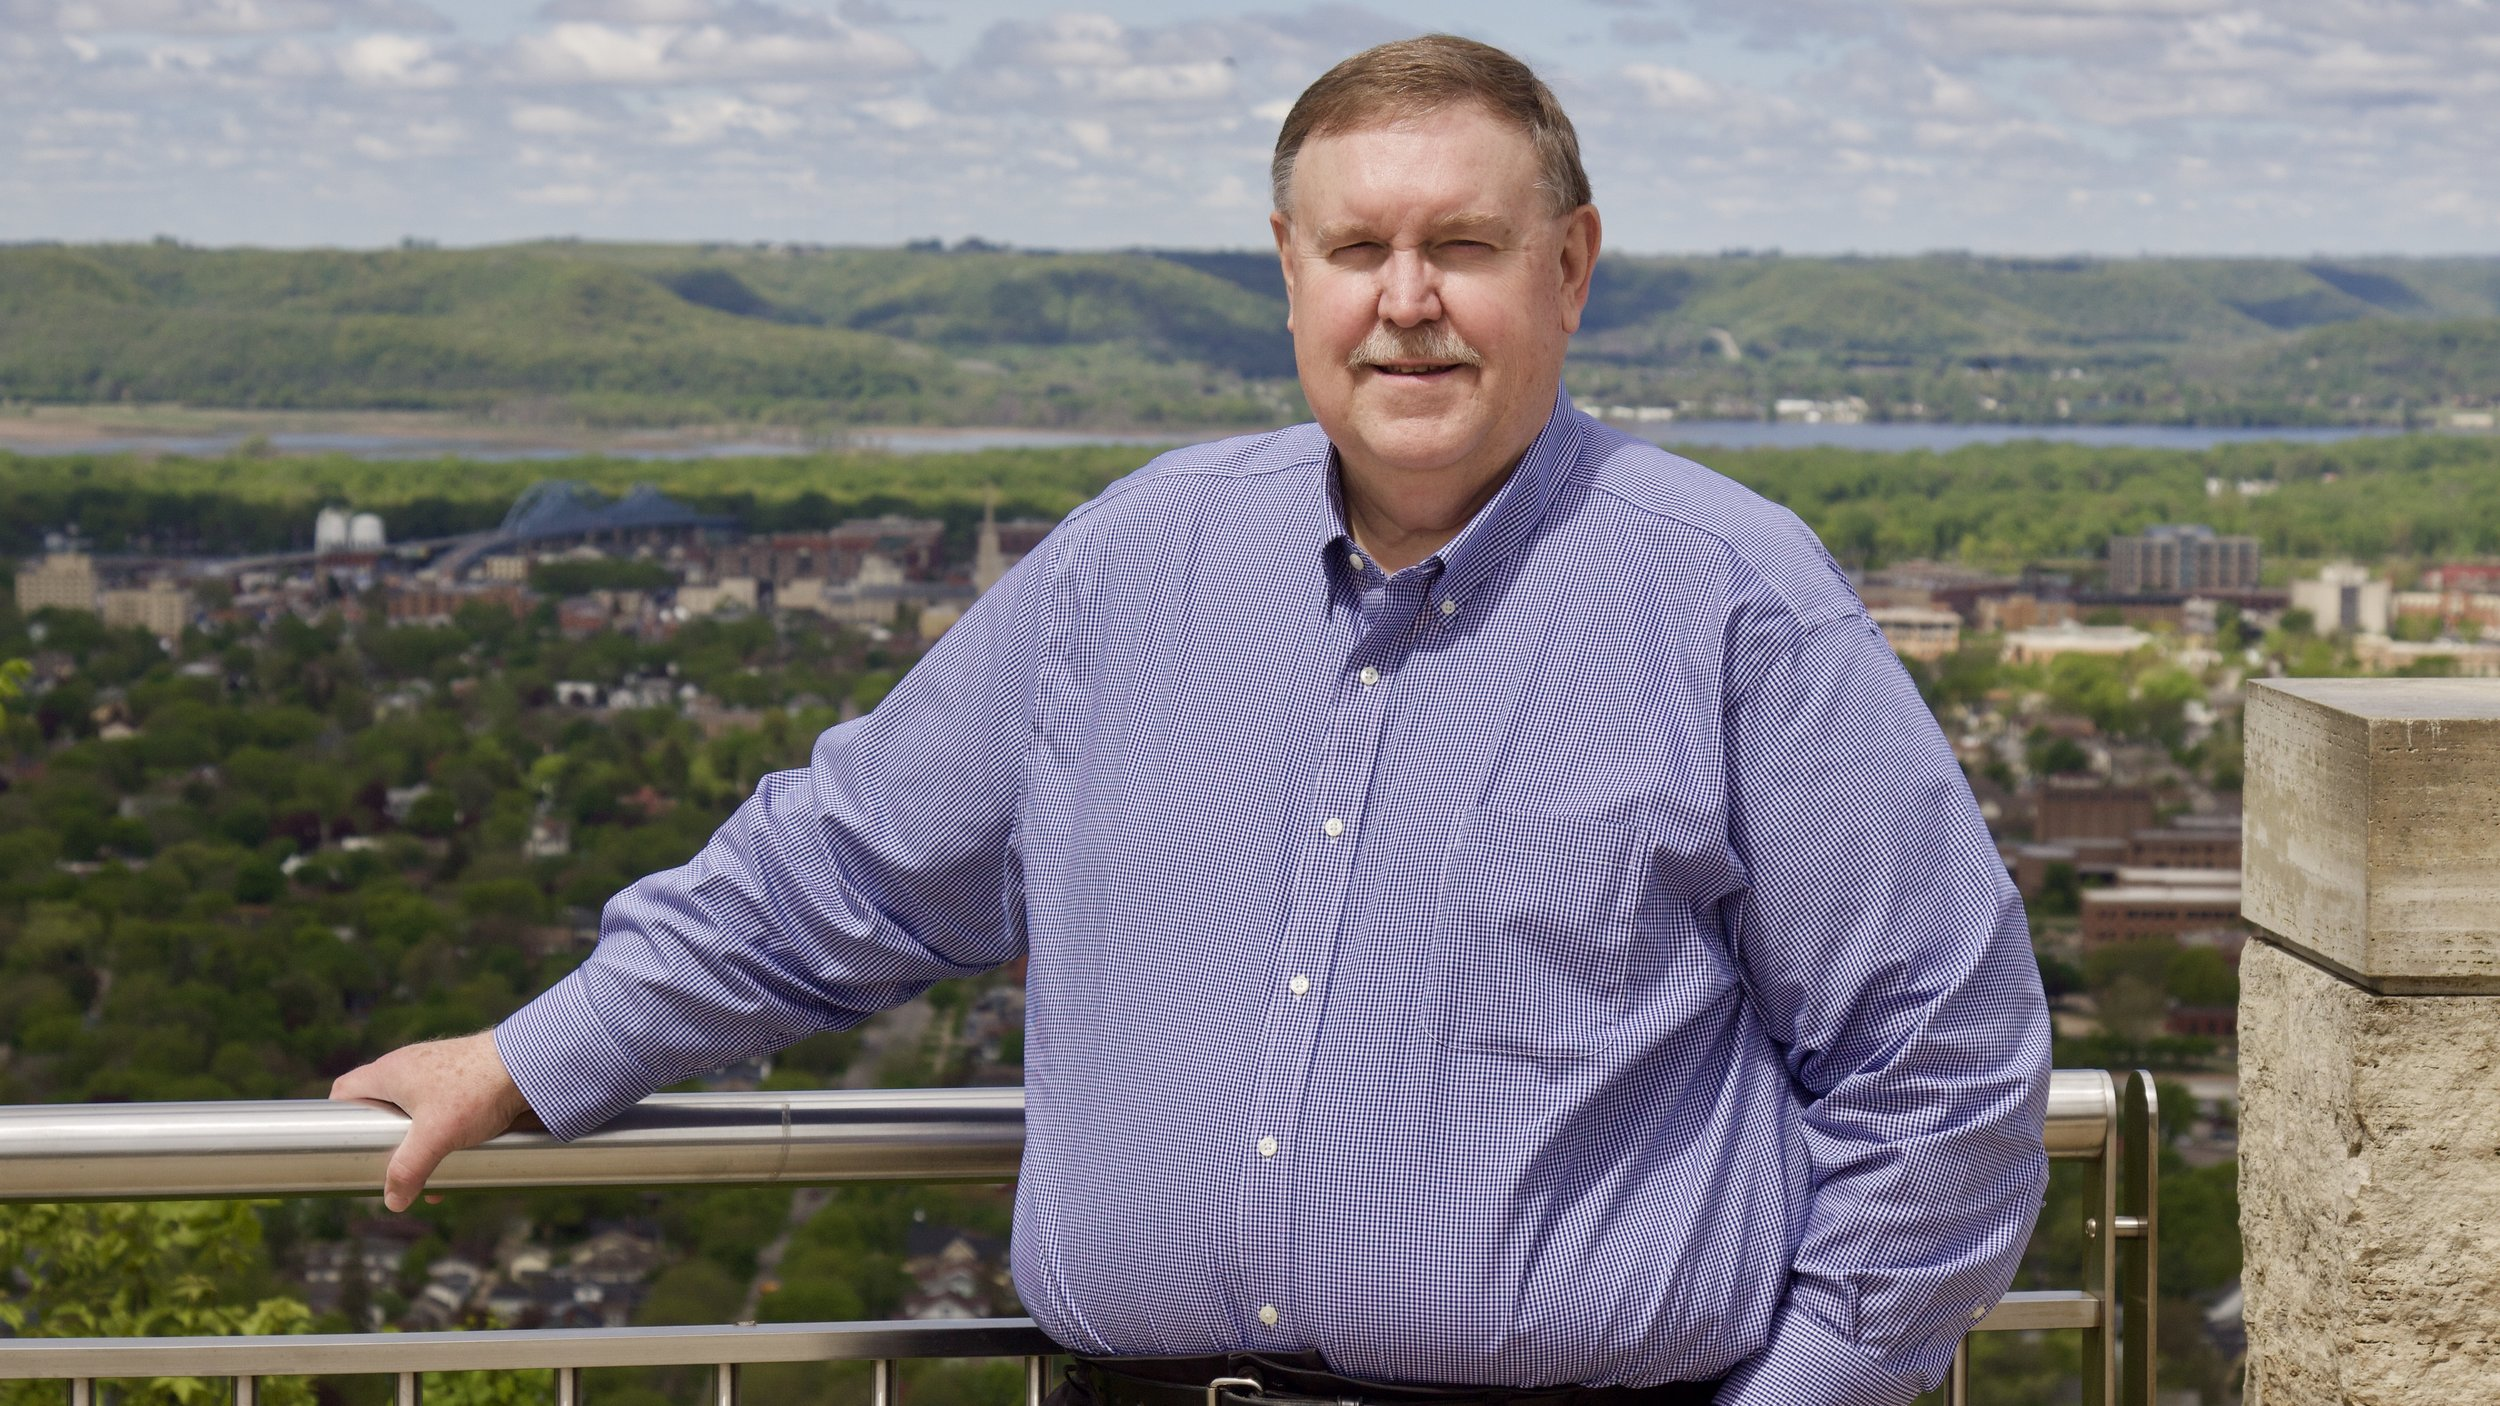 Marlin Helgeson, CEBS, Managing Partner, Greater La Crosse, WI Area